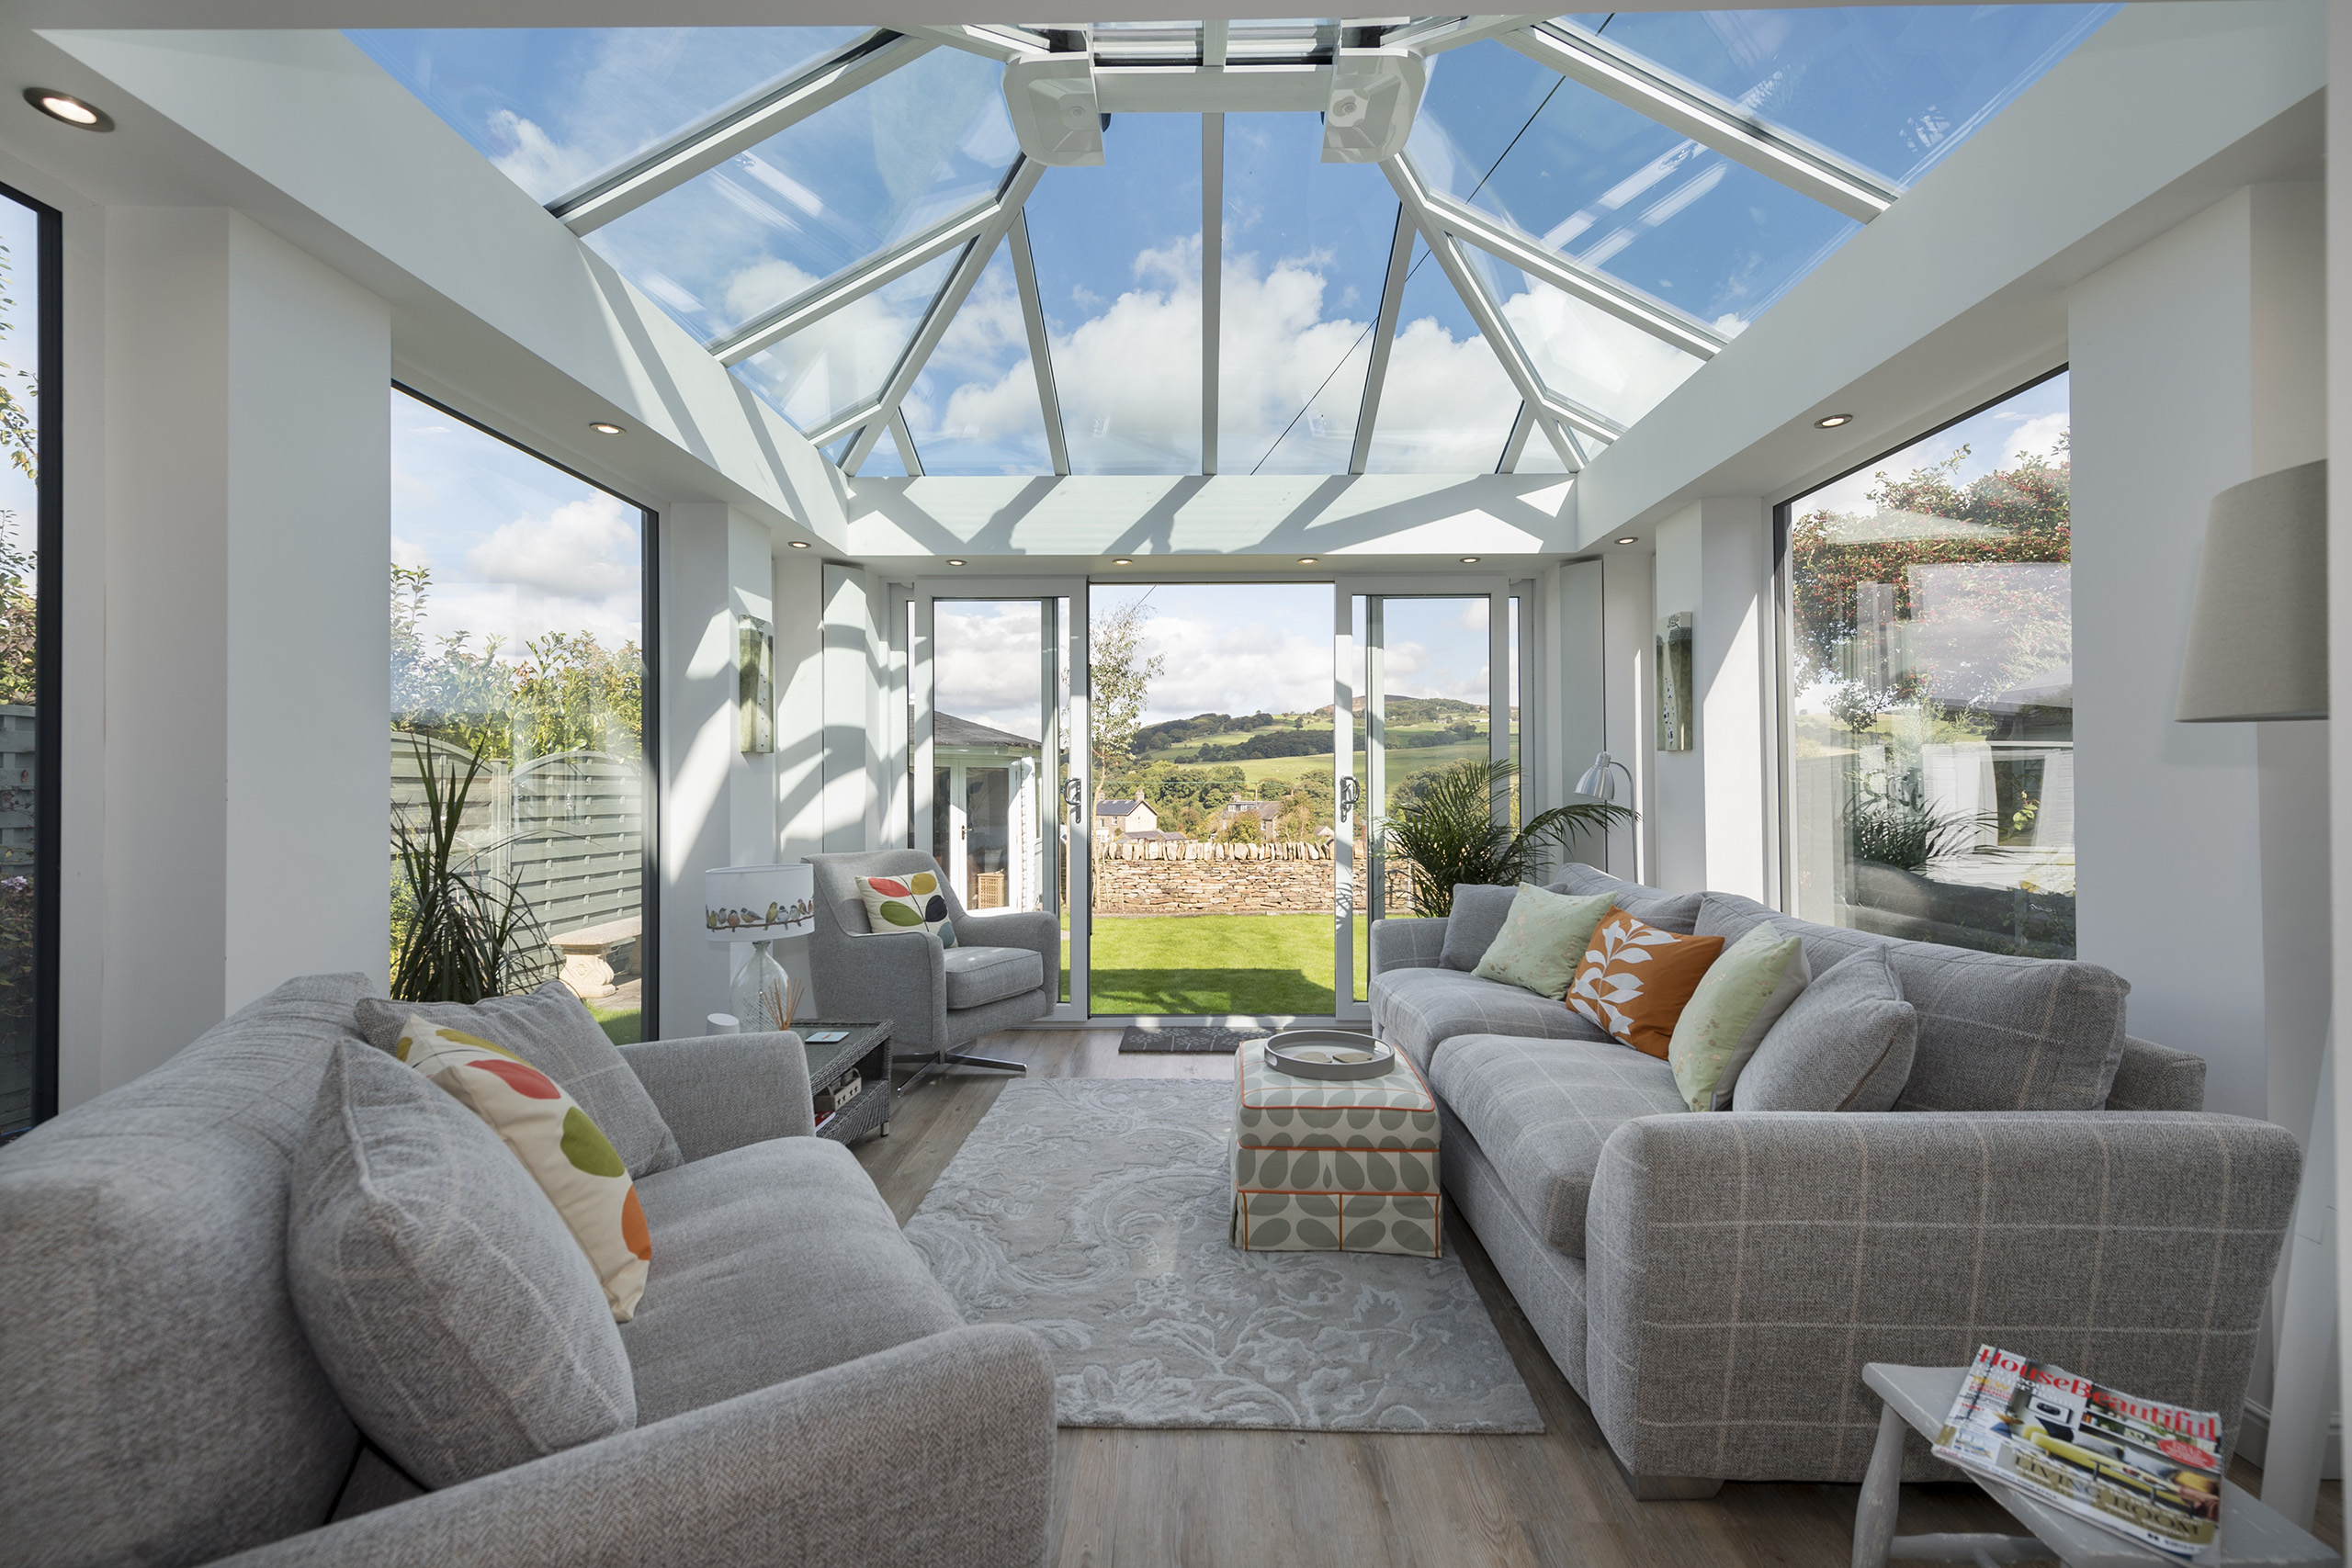 What Benefits Will A Victorian Conservatory Give My Leeds Property?